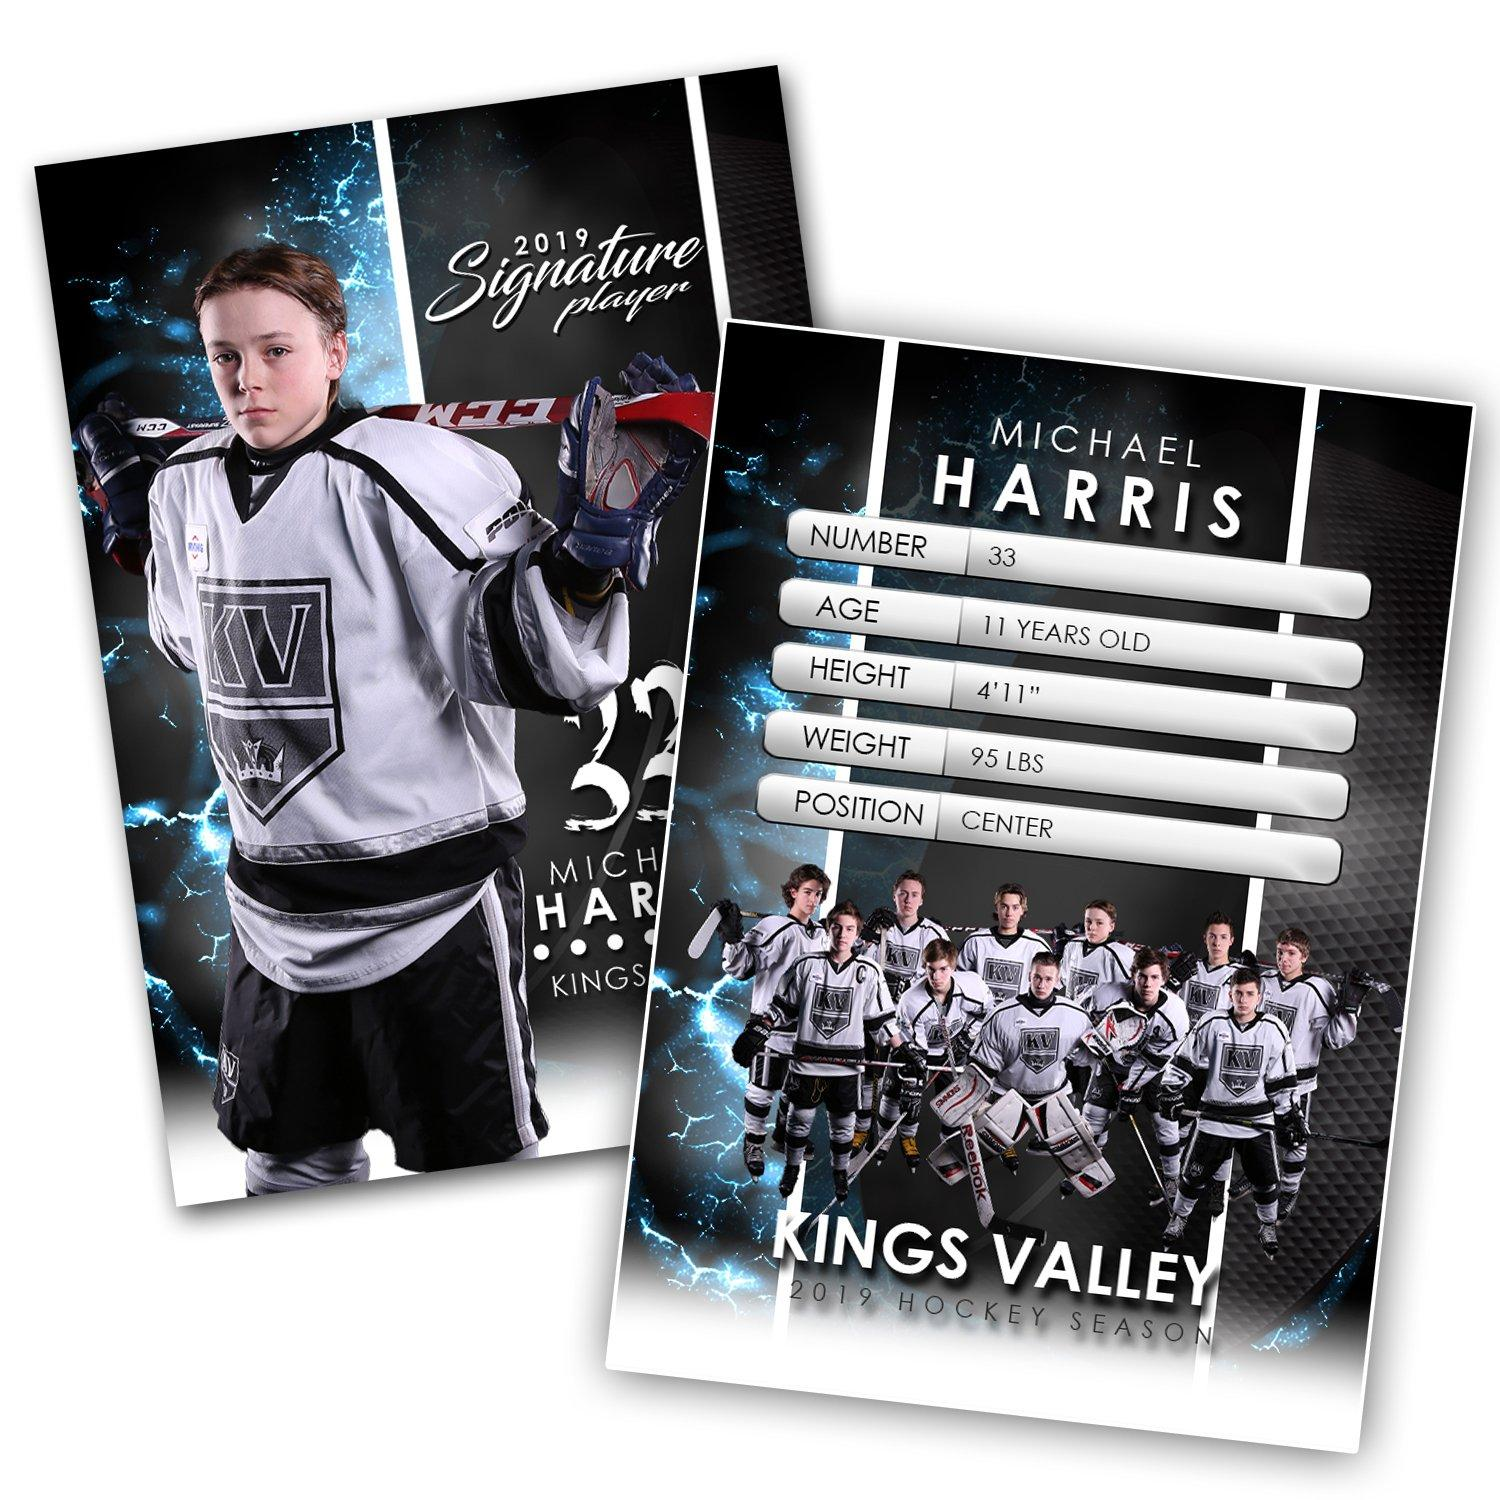 Signature Player - Hockey - V1 - Extraction Trading Card Template-Photoshop Template - Photo Solutions